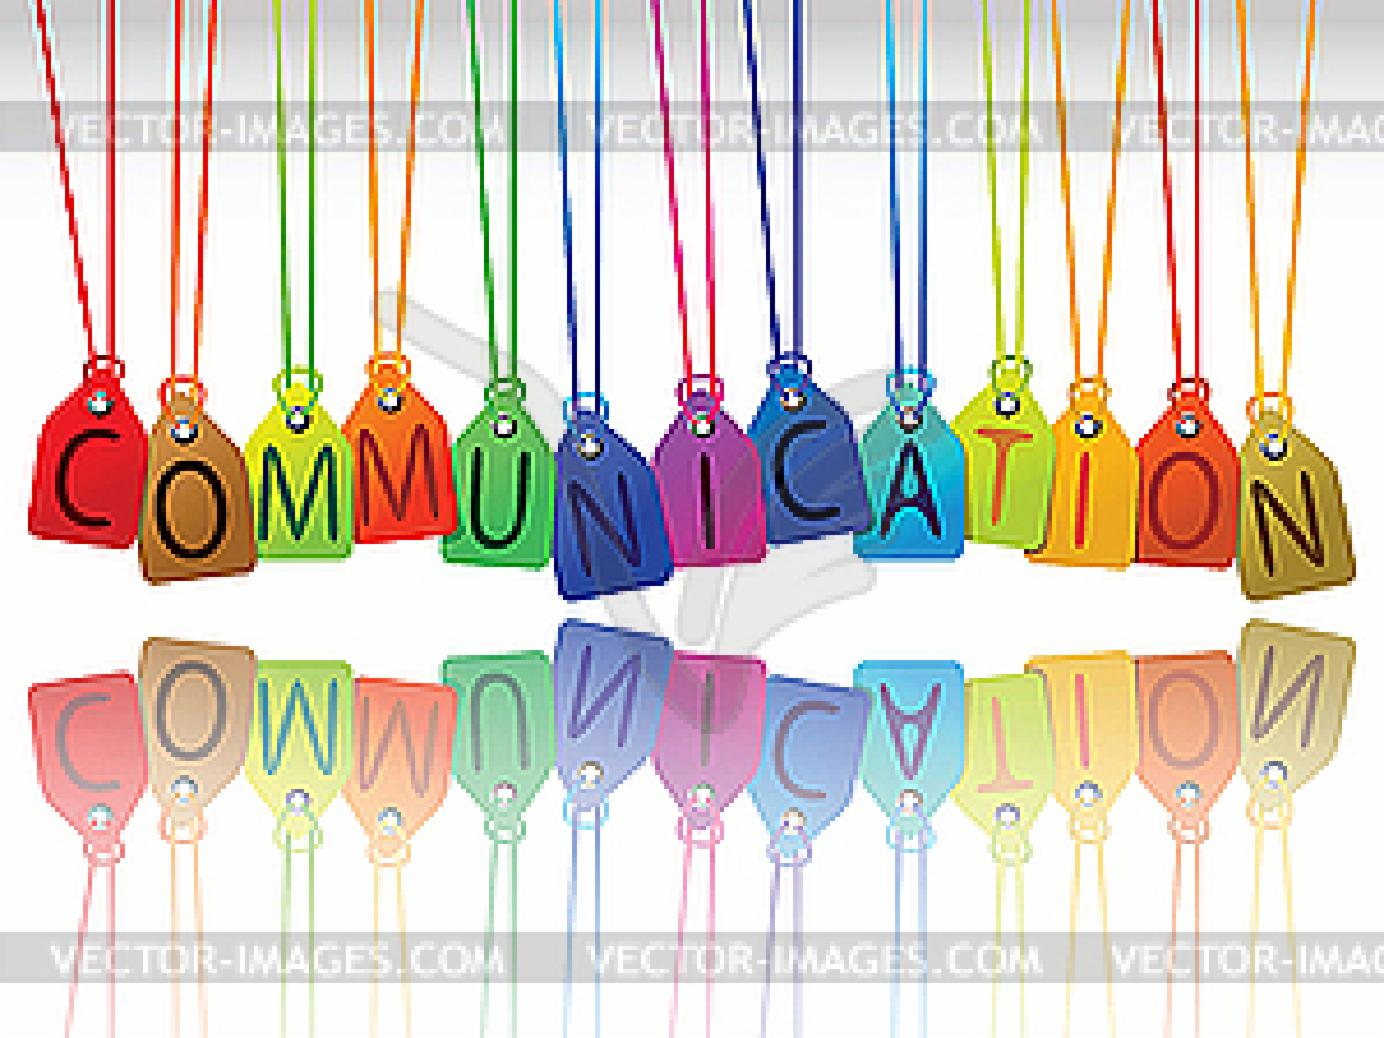 victoria primary school communication